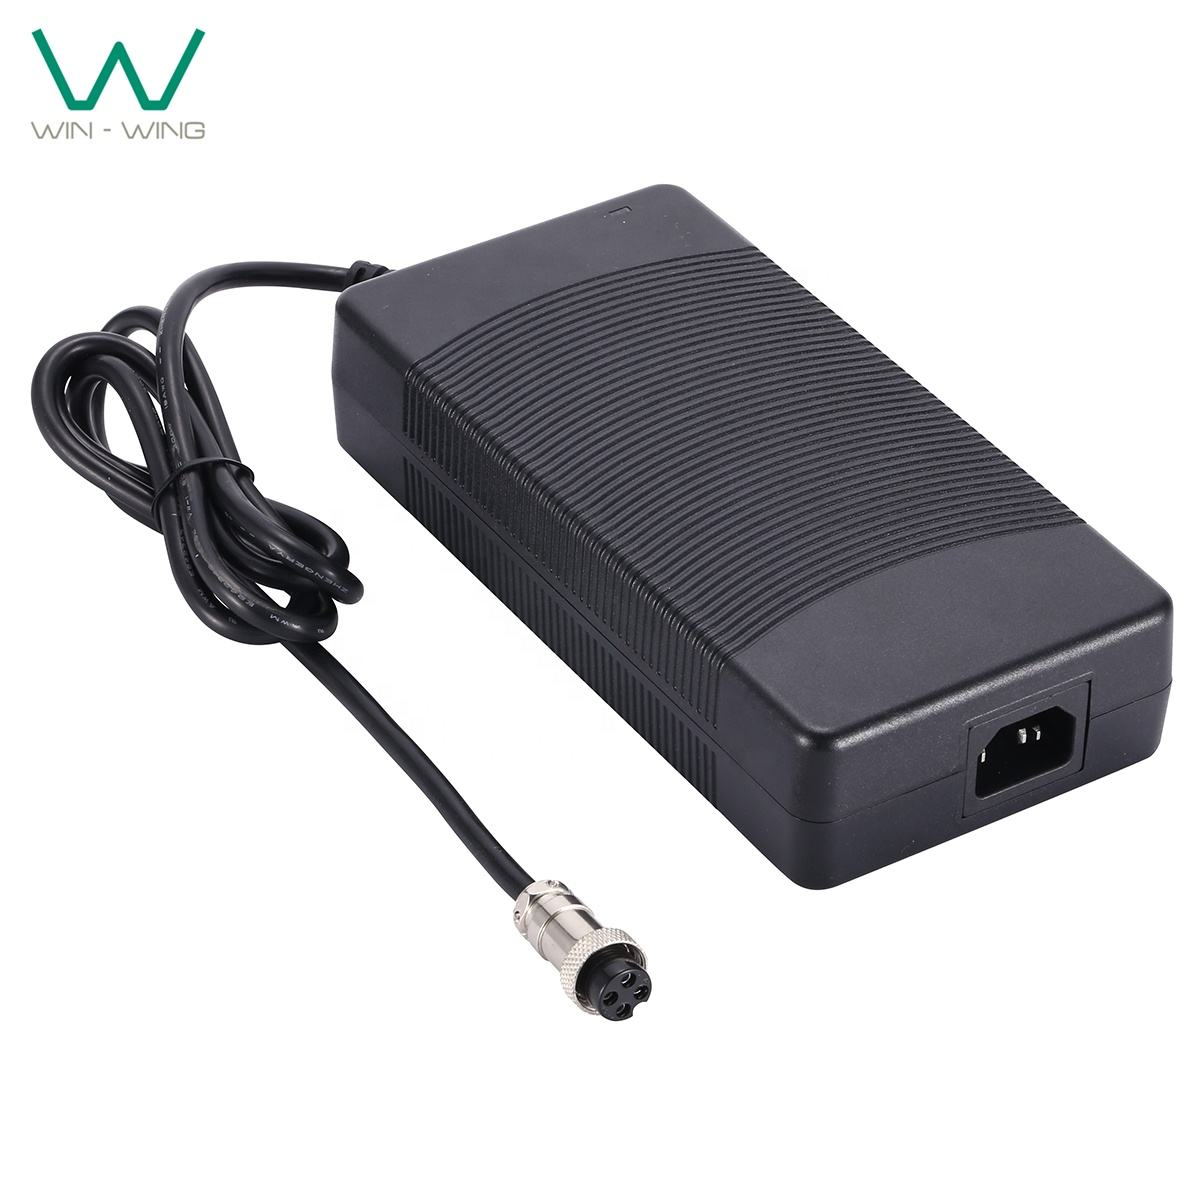 AC DC Adapter 24V 10A 240W NETZTEIL UL62368 TUV-GS CE PSE ROHS